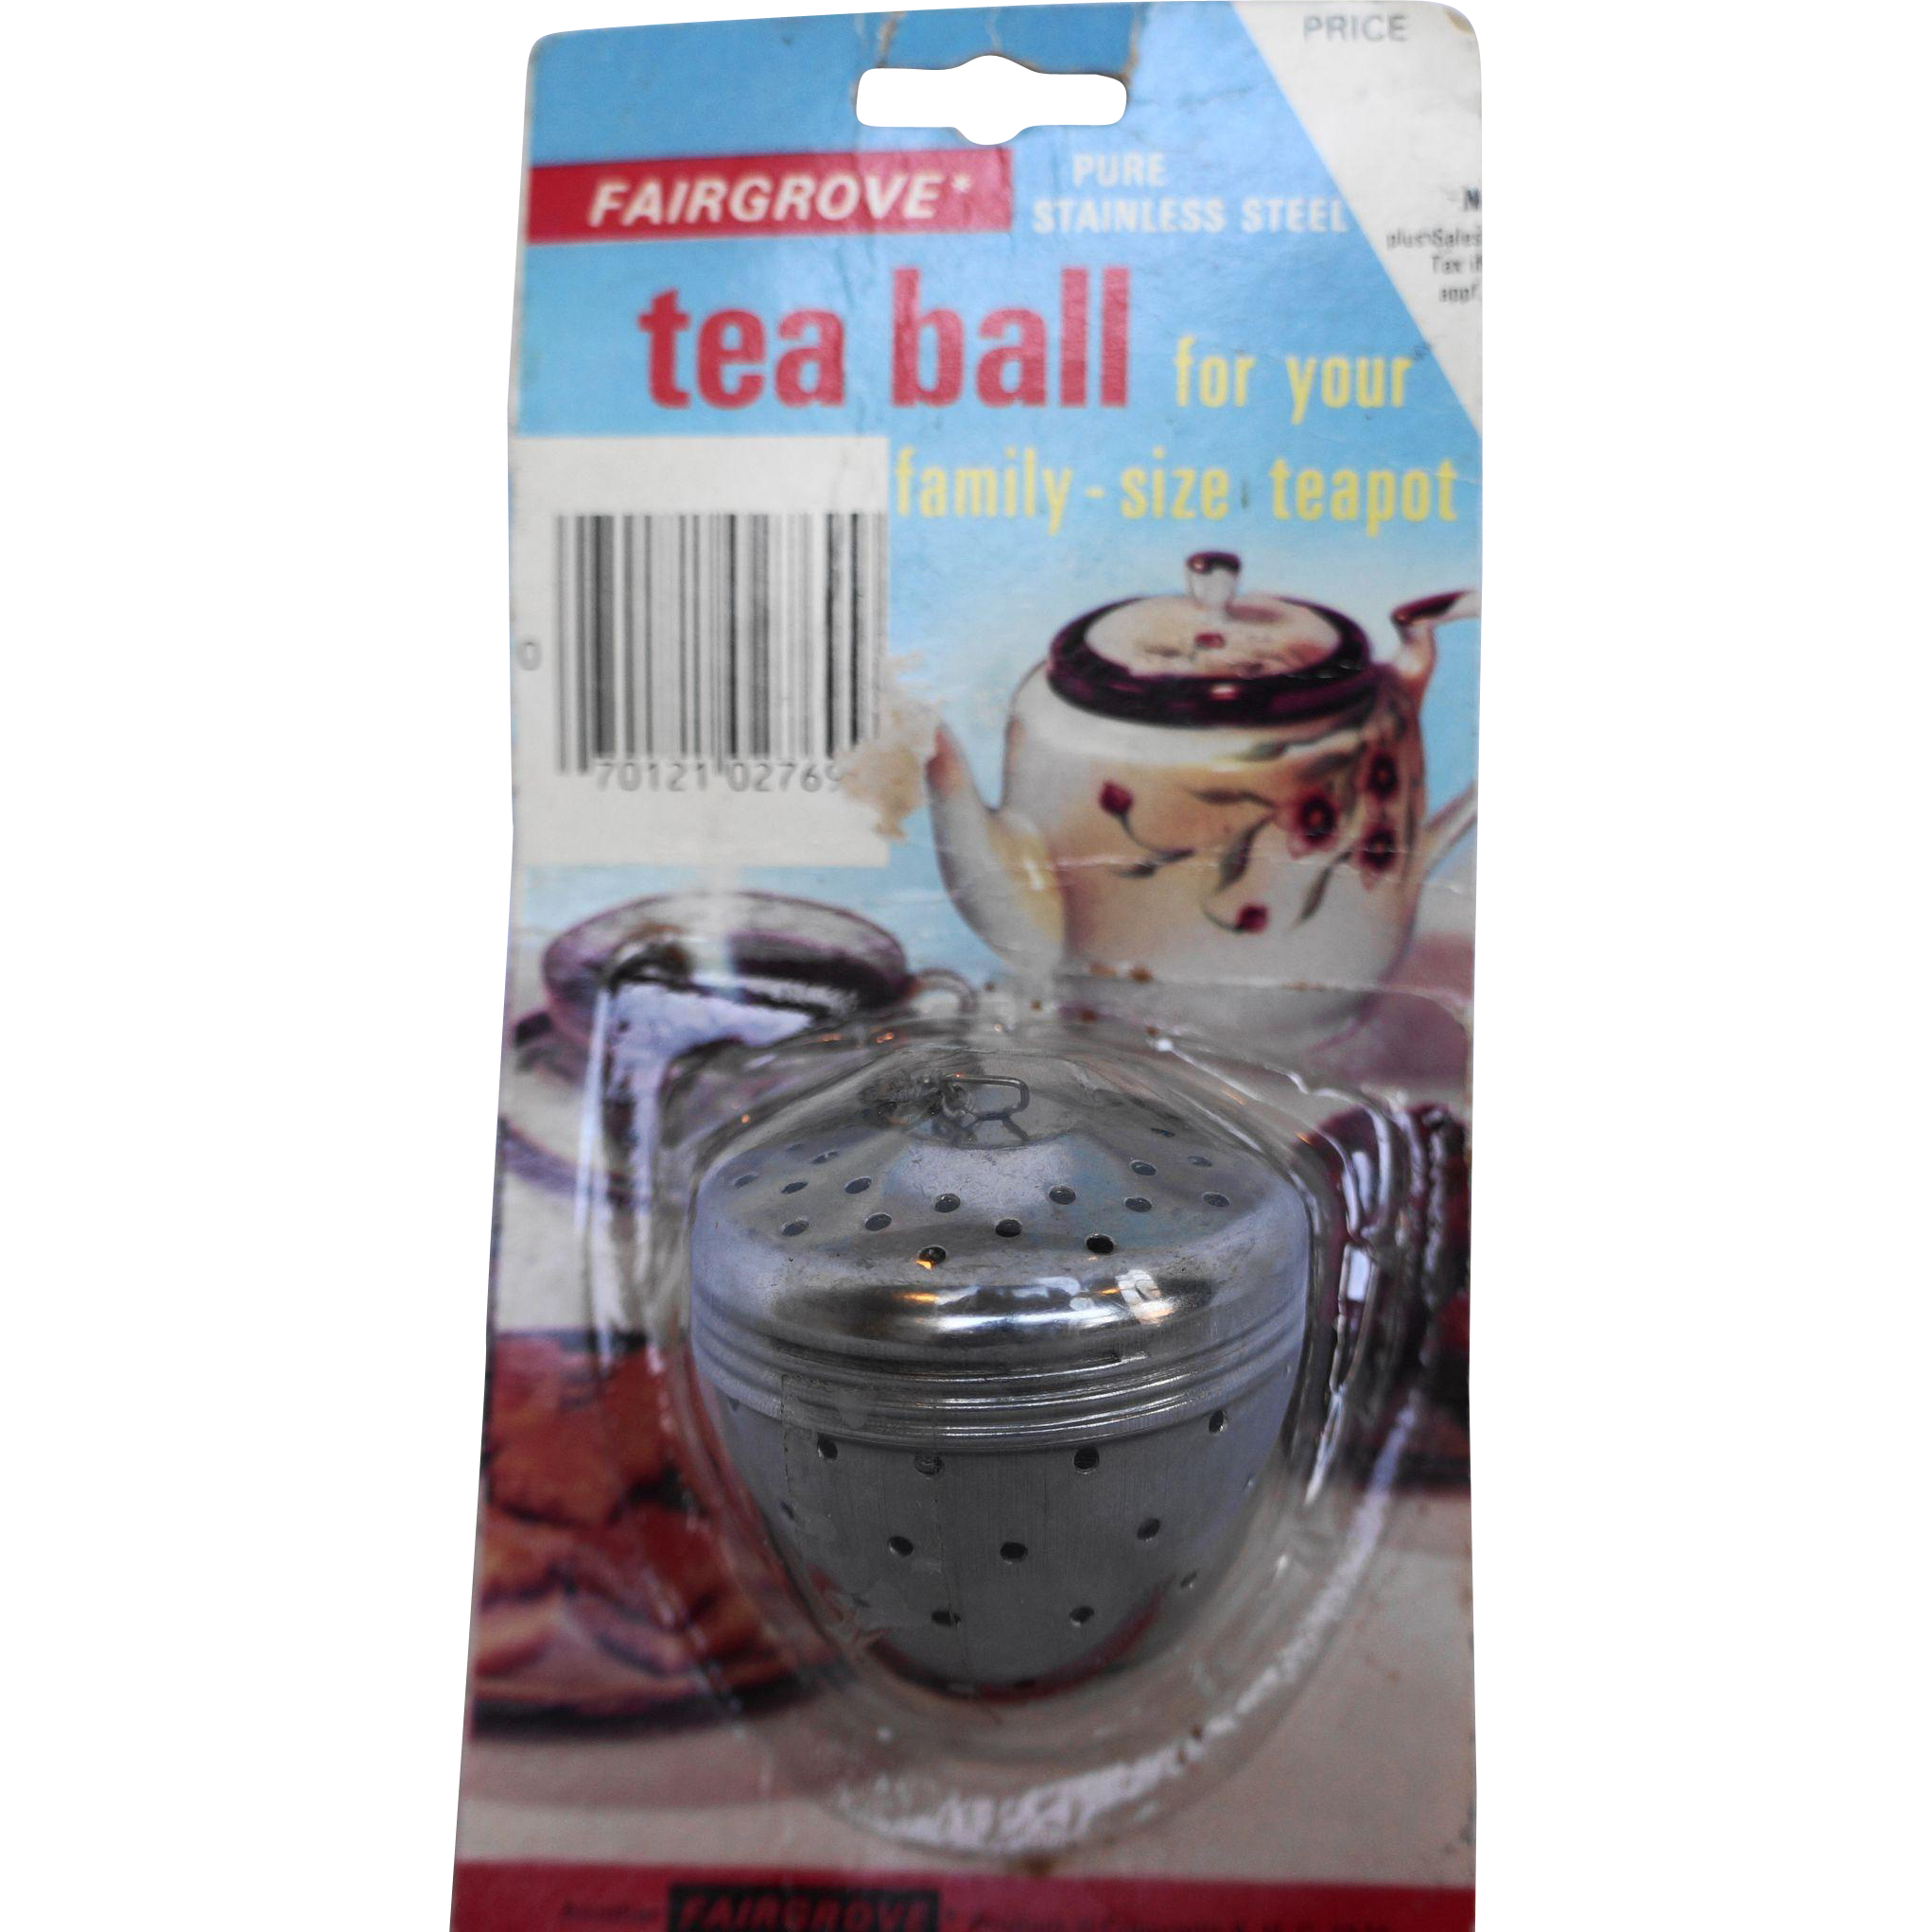 Fairgrove Stainless Steel Tea Ball 1970s Original Package